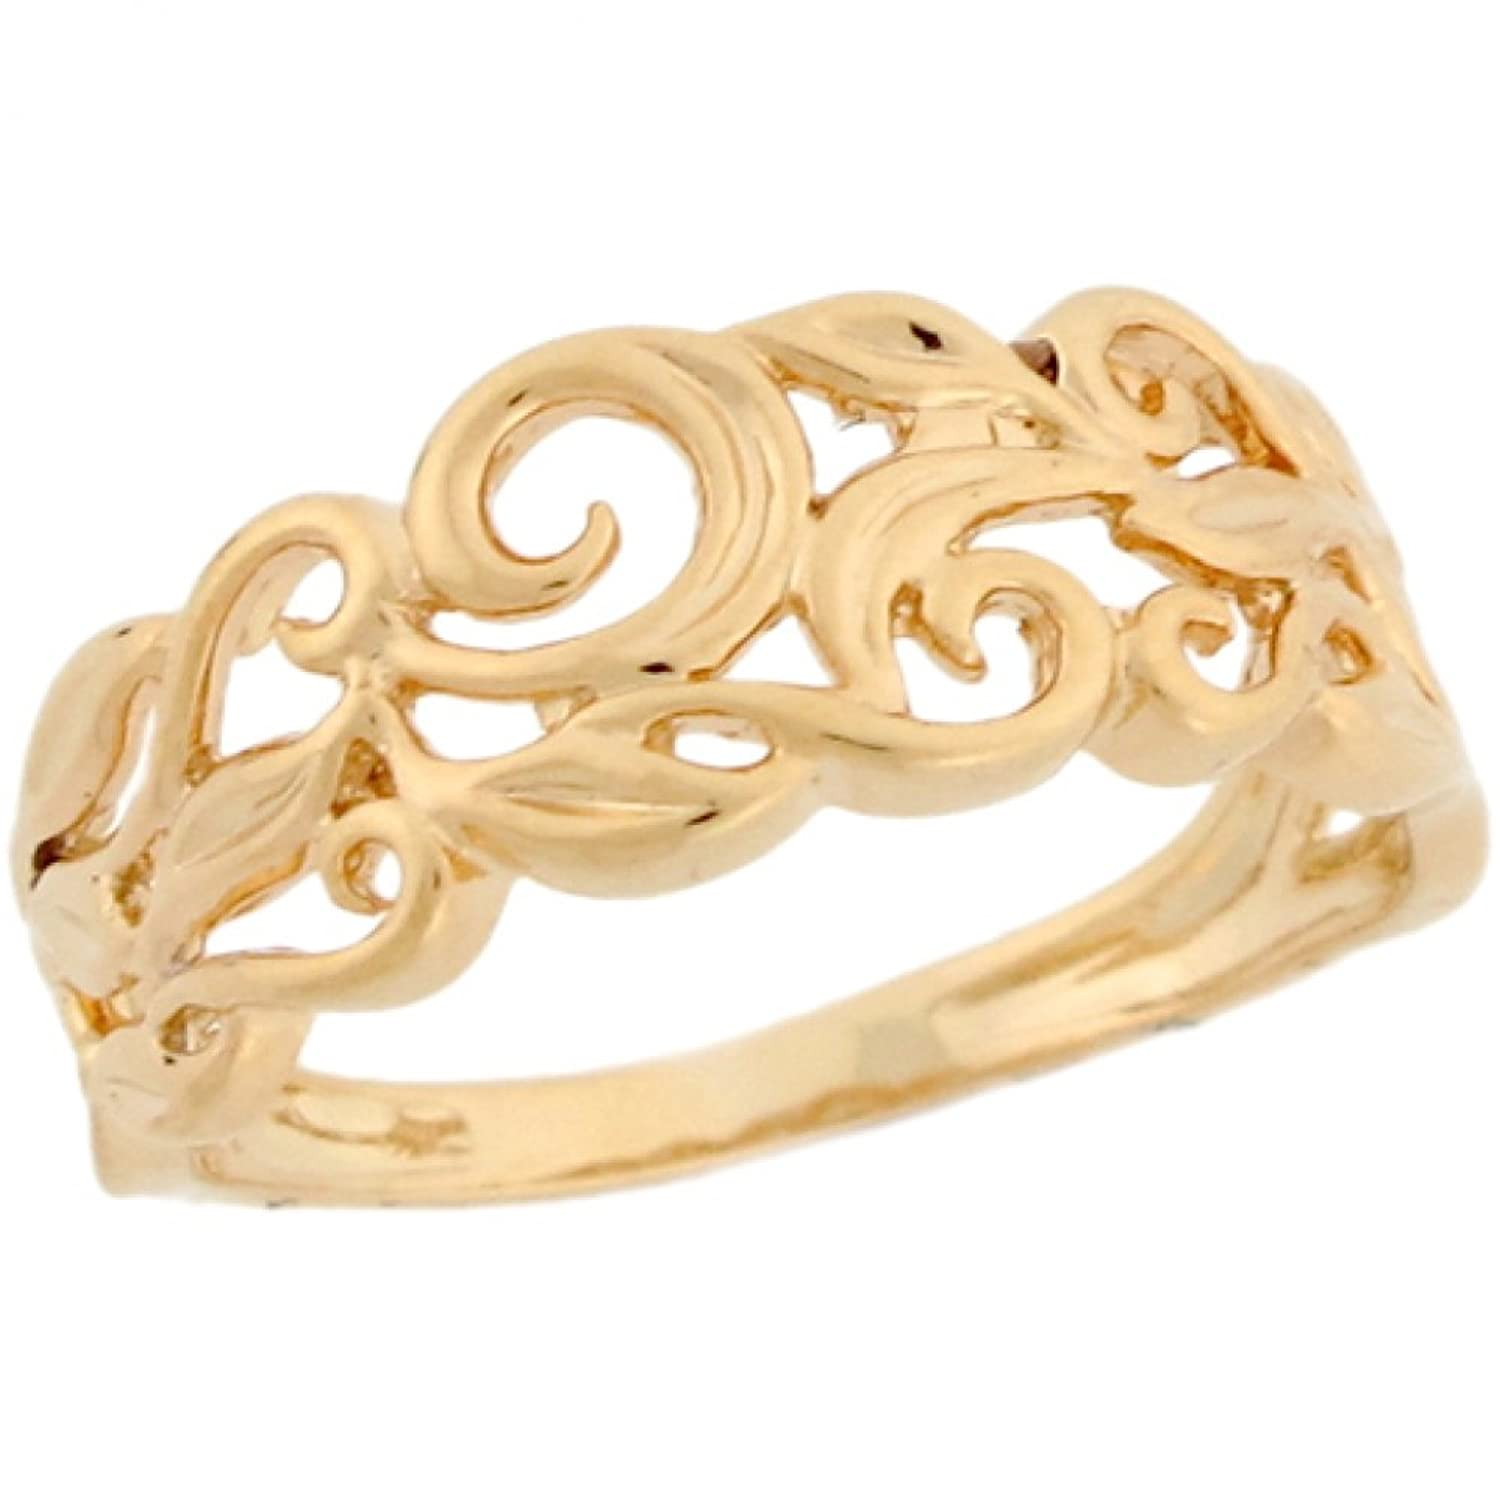 band derwin com gold lar online designs him for bands india caratlane jewellery ring